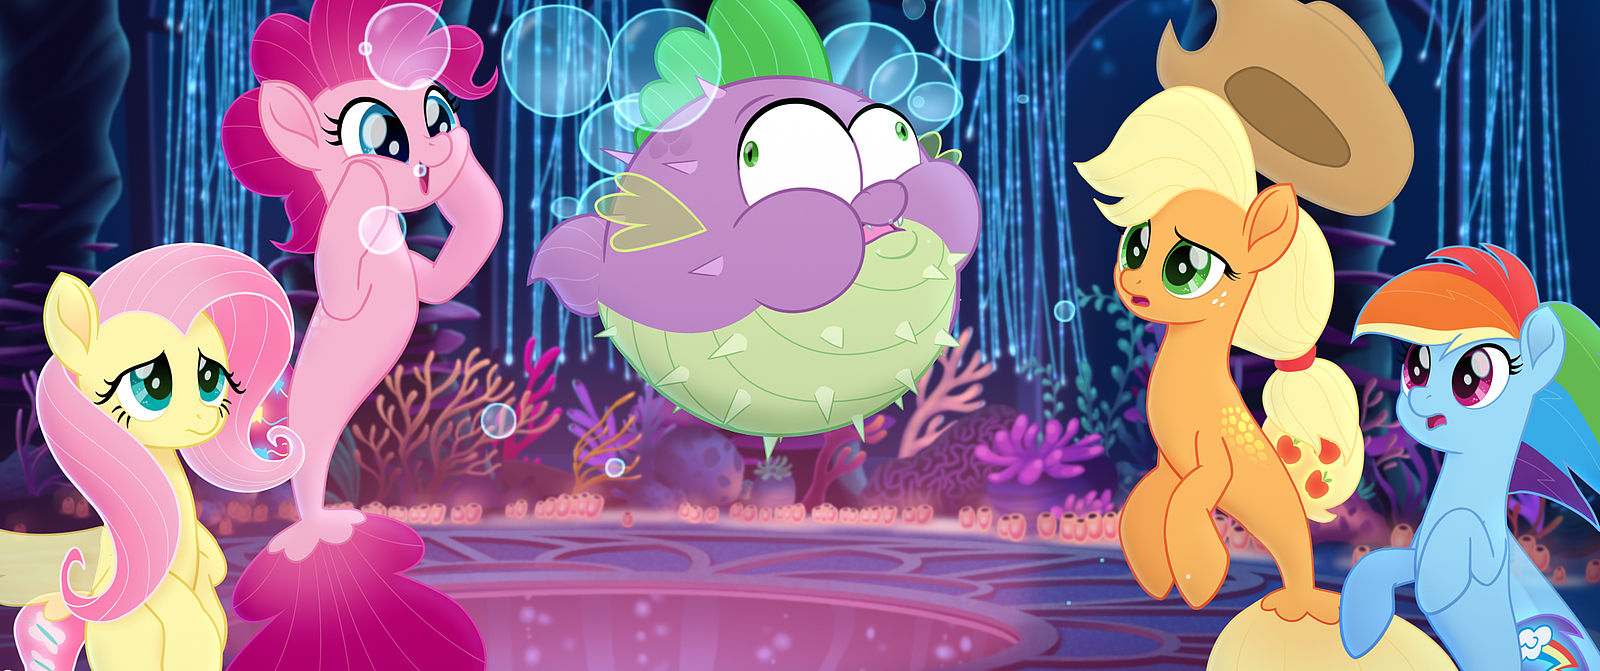 My Little Pony - Der Film - Bild 15